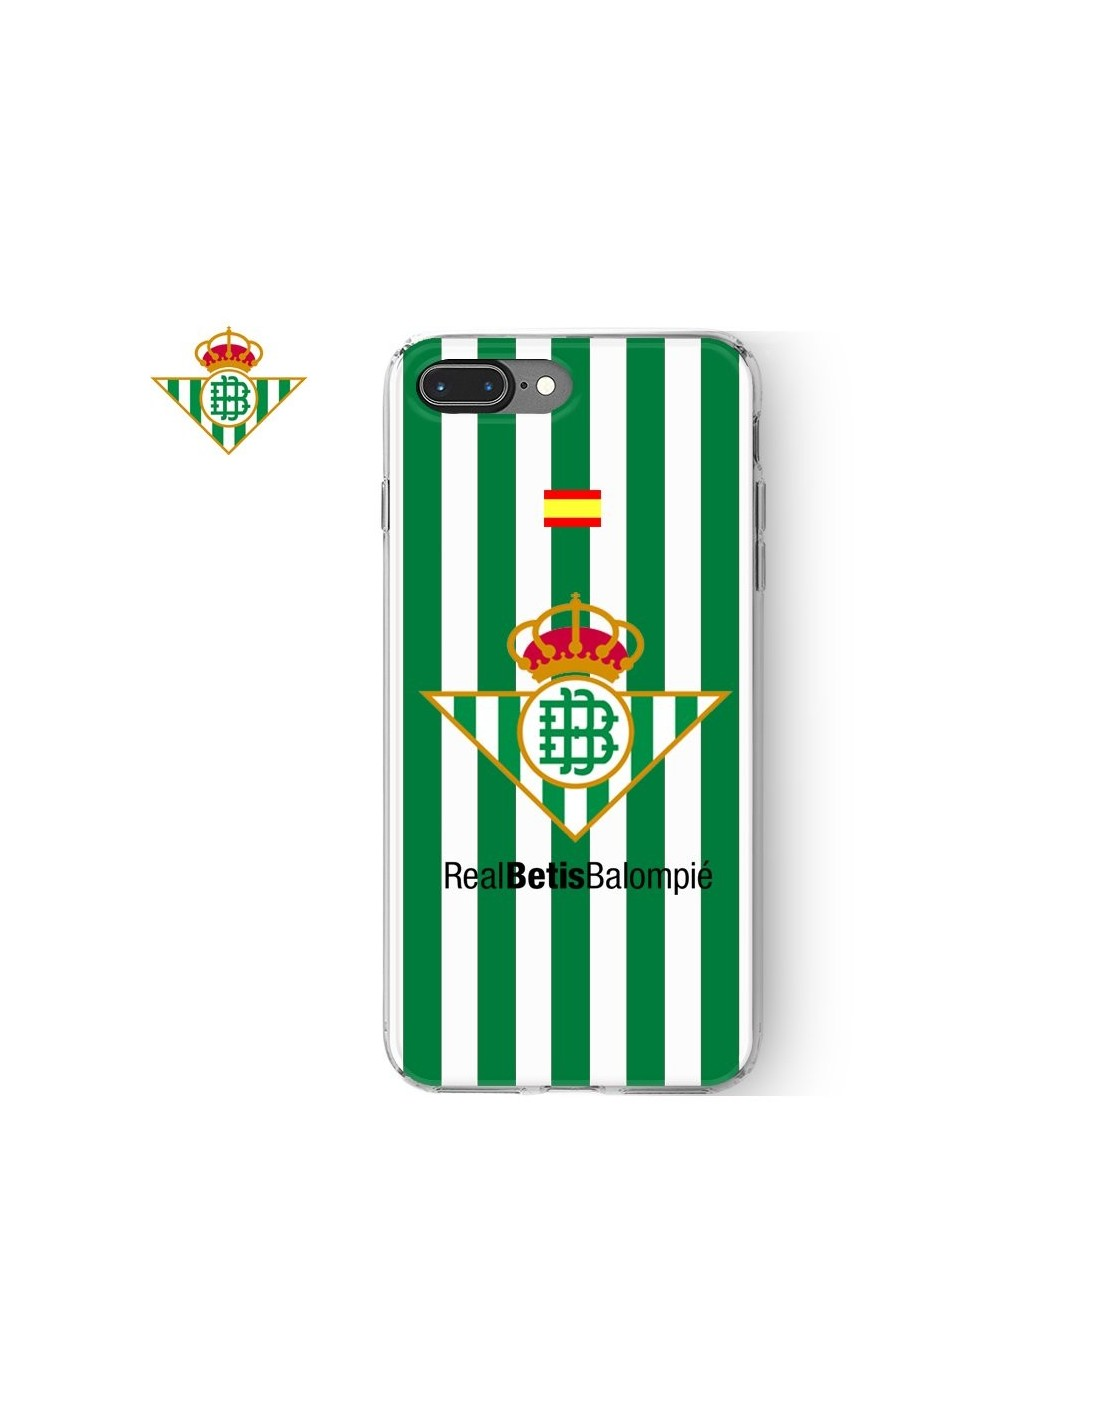 3e0d4eb186e Carcasa TPU iPhone 7 Plus / iPhone 8 Plus licencia Fútbol Real Betis